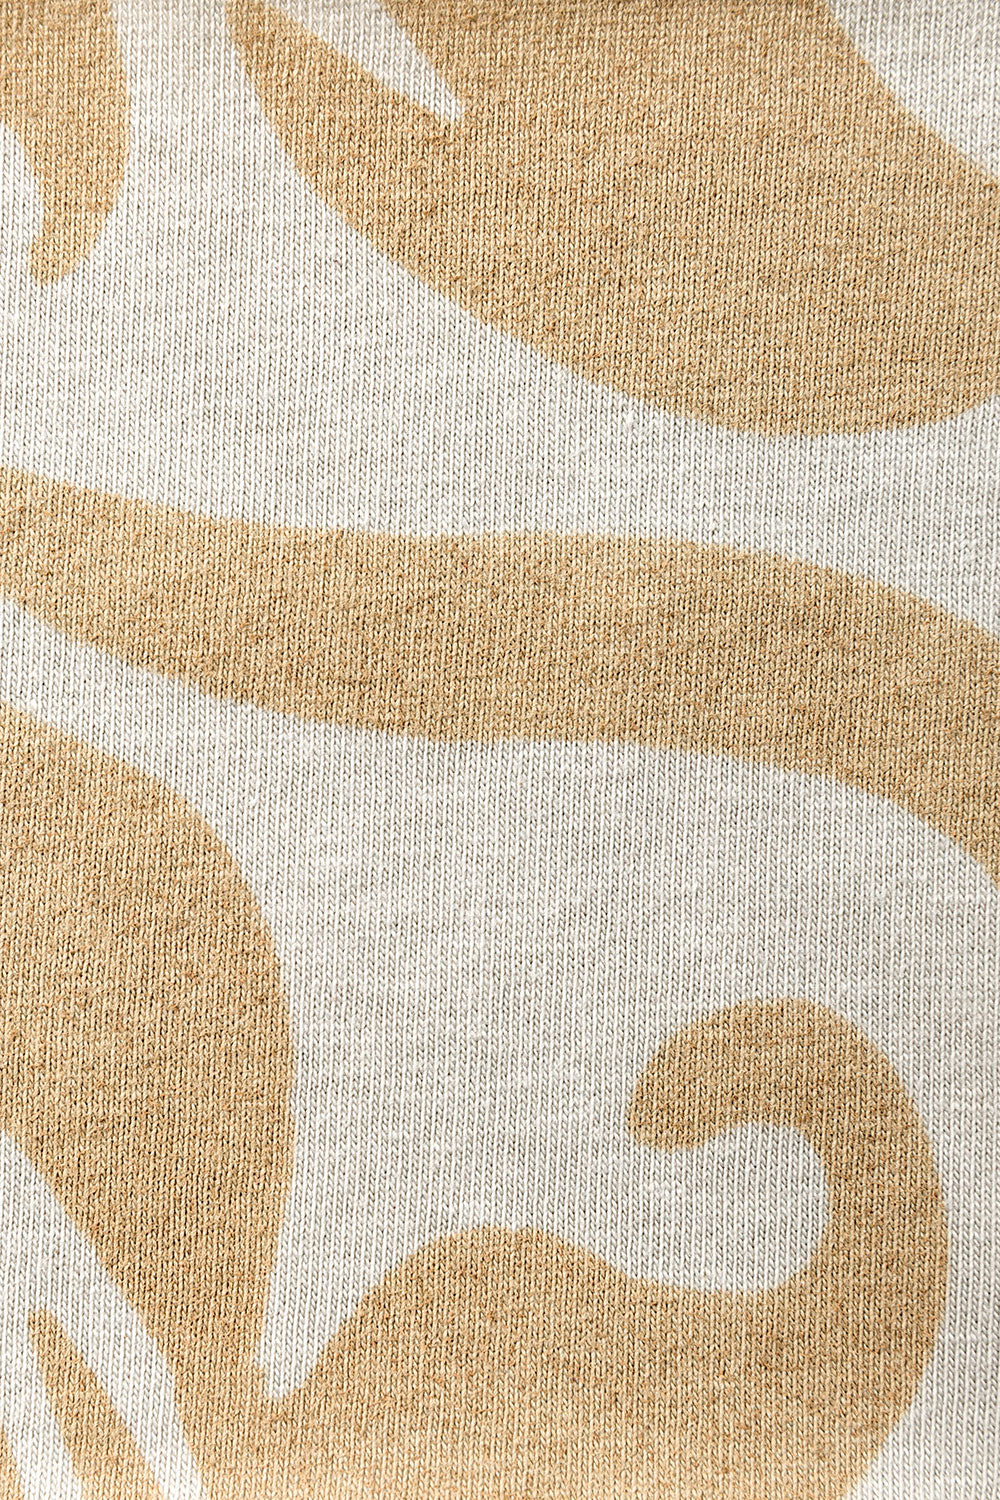 The School of Making Textile Paint Tonal Stencil Design for DIY Projects